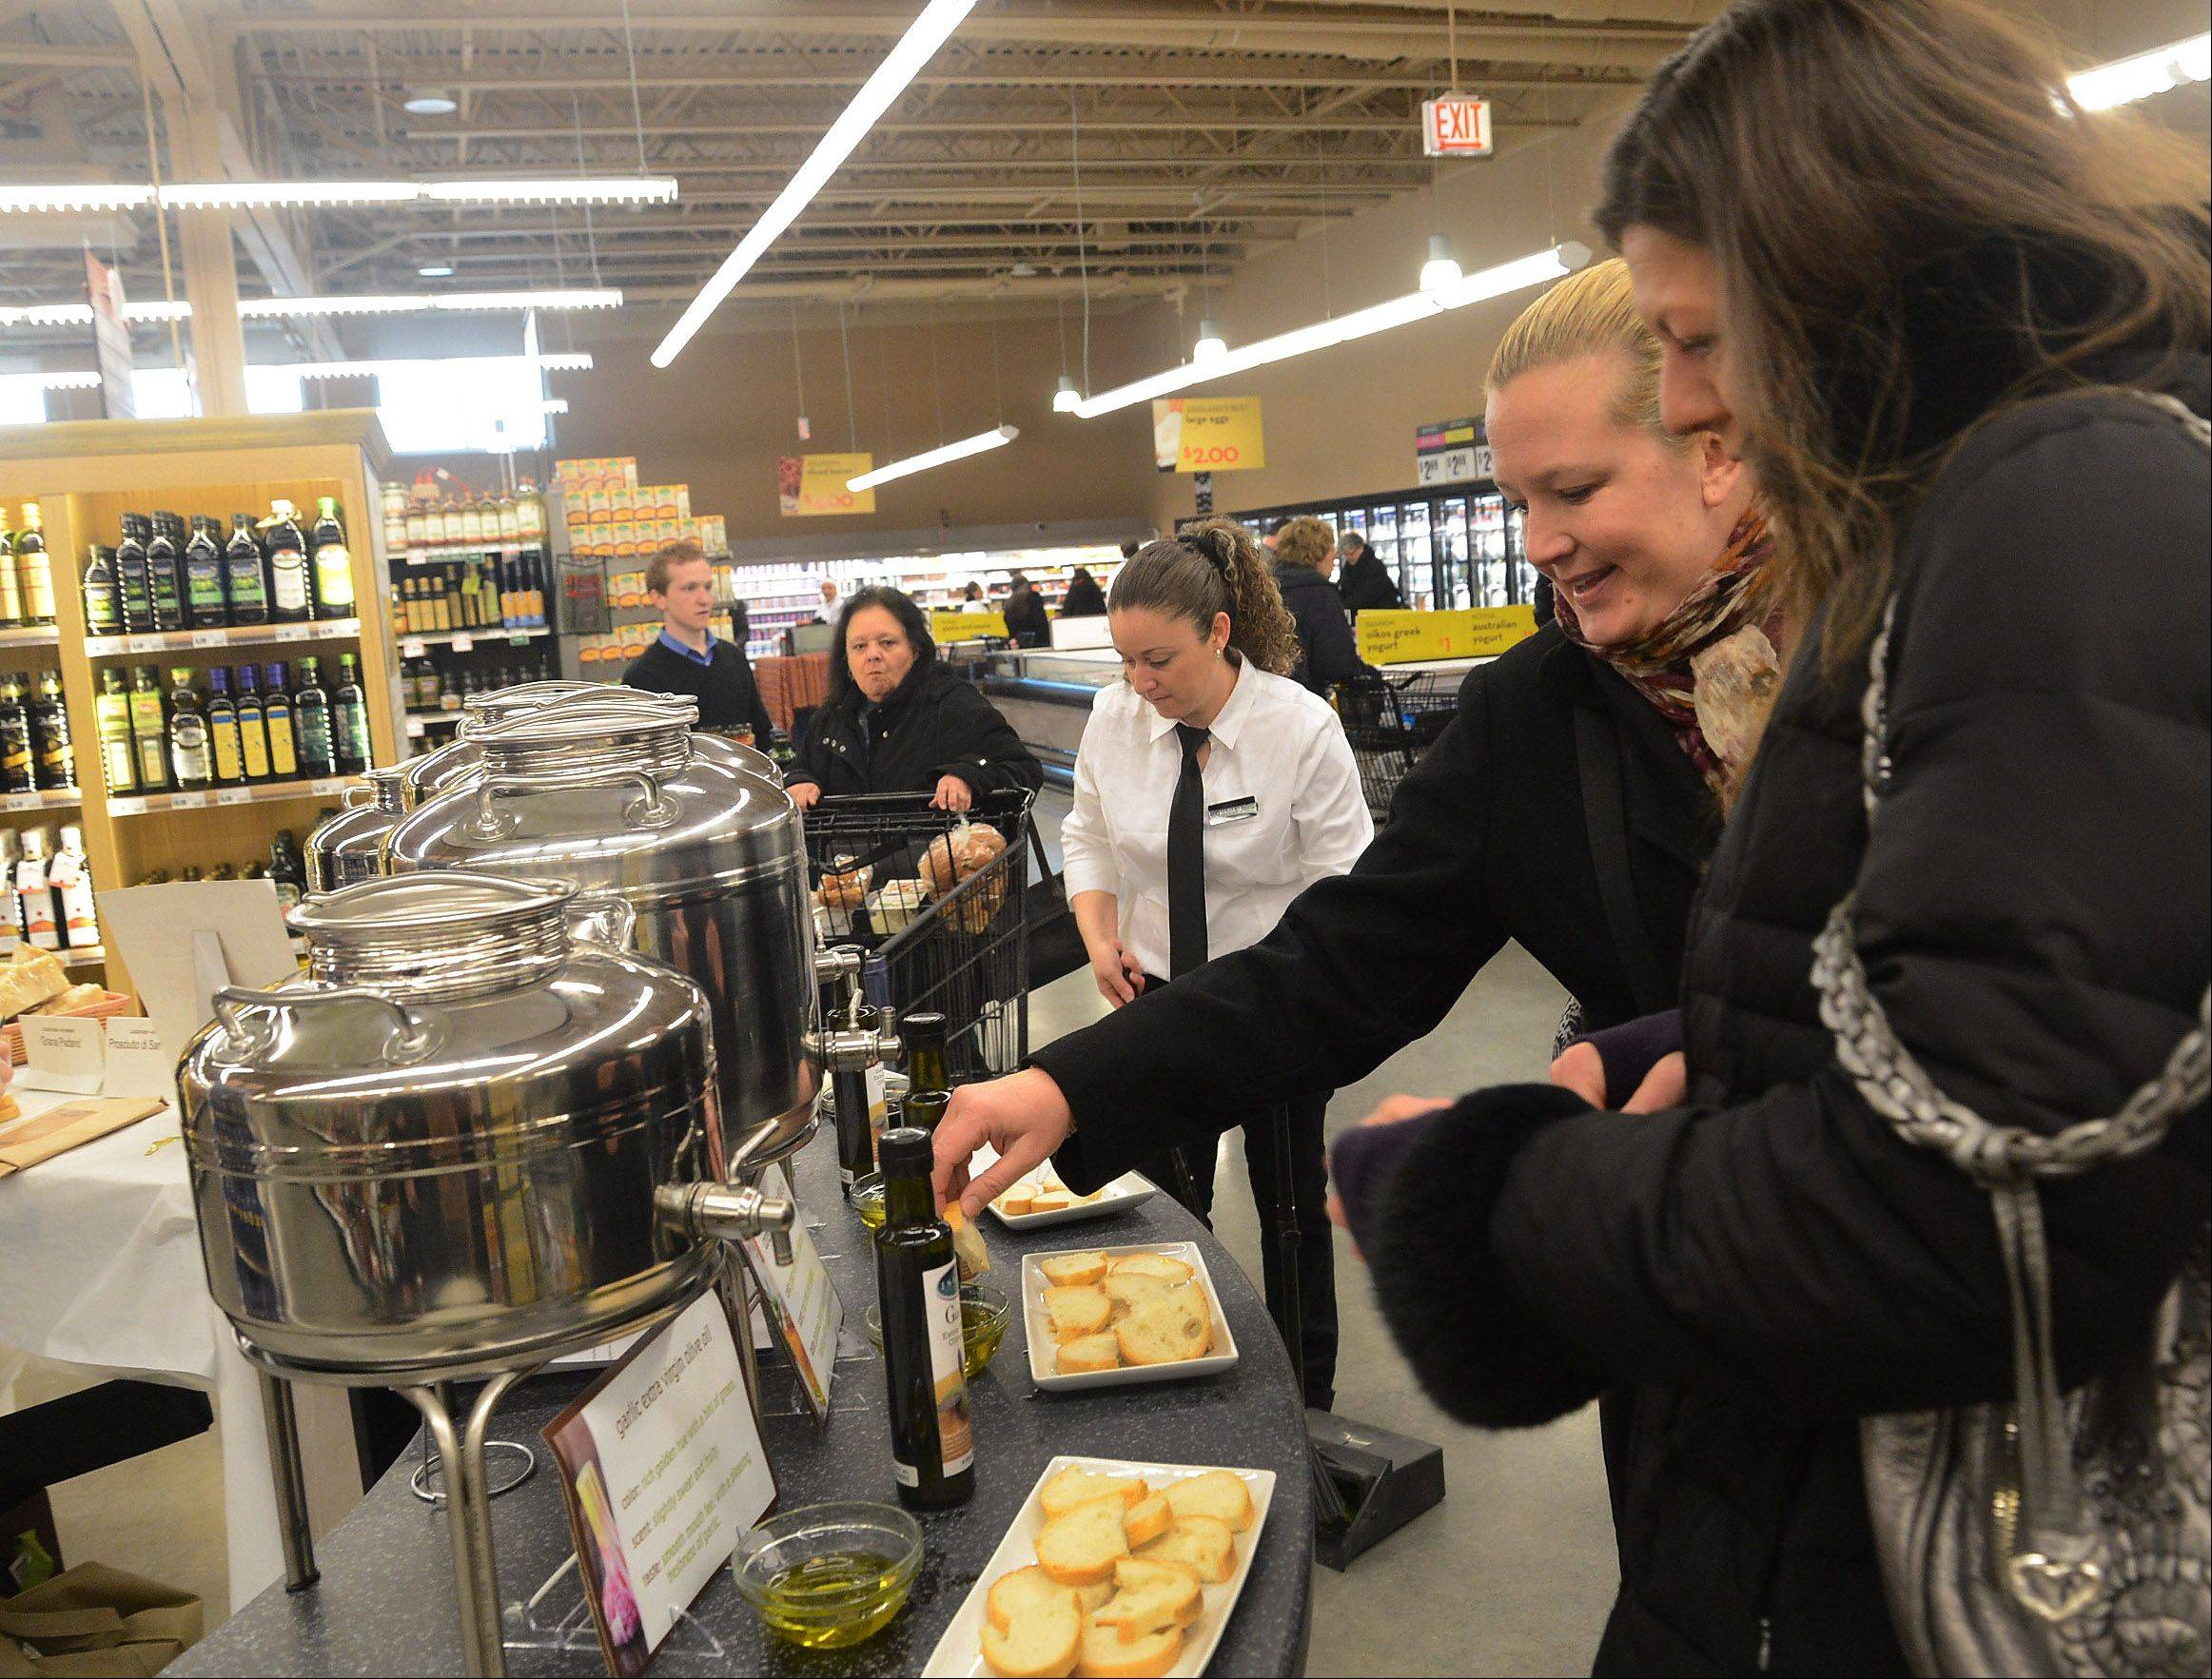 Julie Testin, left, and Christina George, both from Hawthorn Woods, try a sample from the olive oil and vinegar shop at the new Lake Zurich Mariano's grocery store that opened Tuesday.